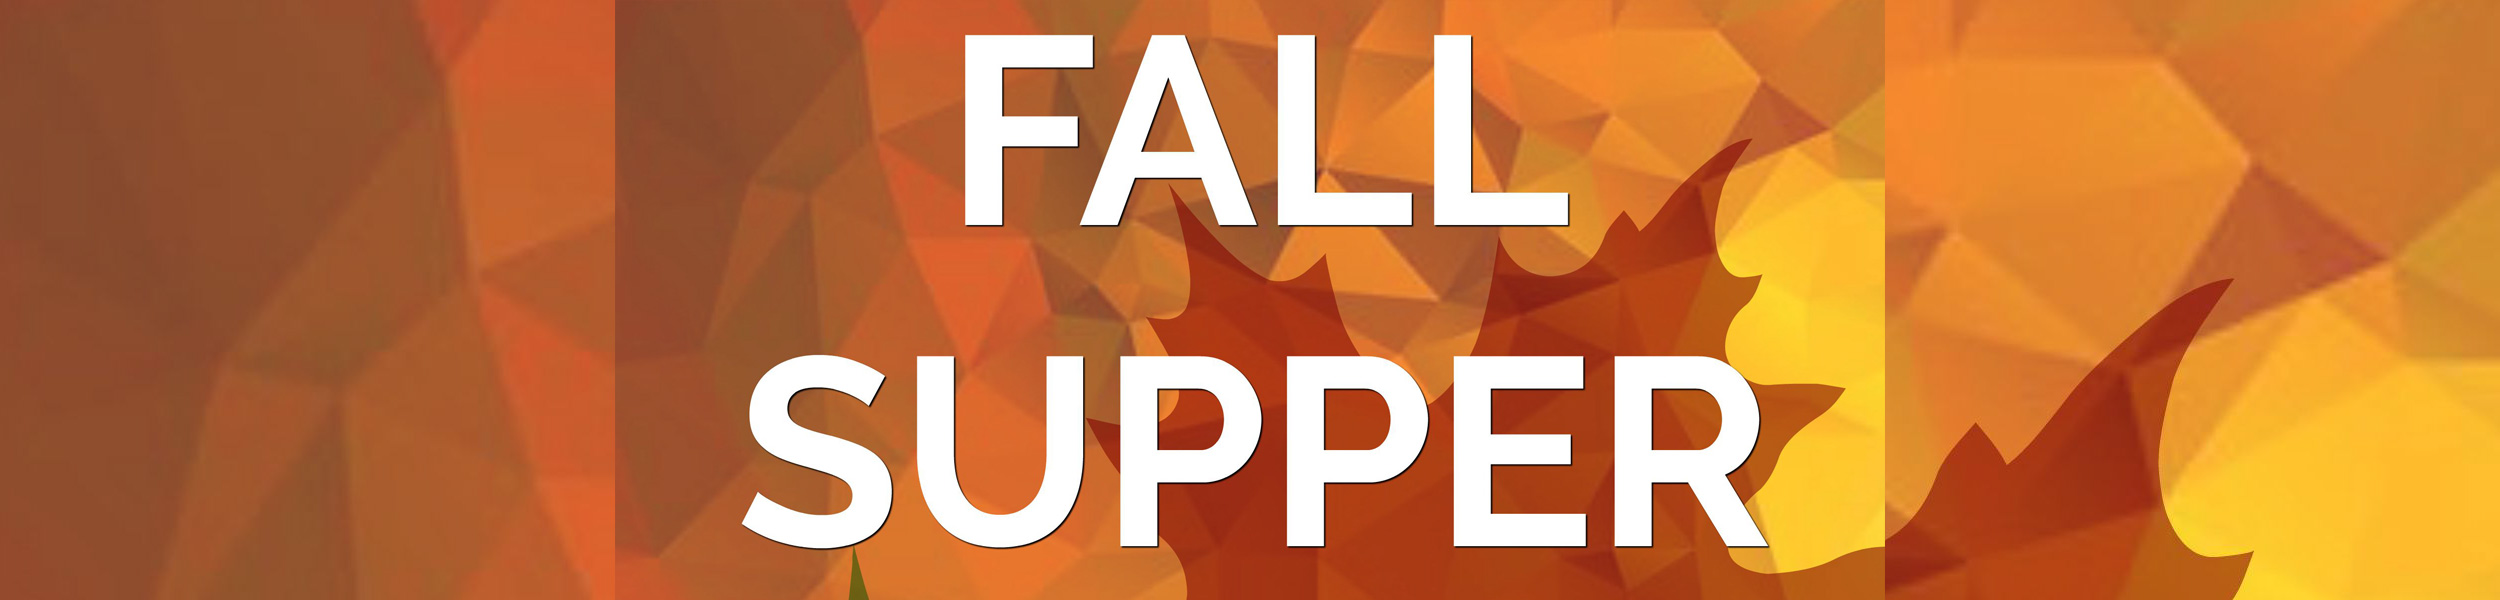 Join us for the Fall Supper